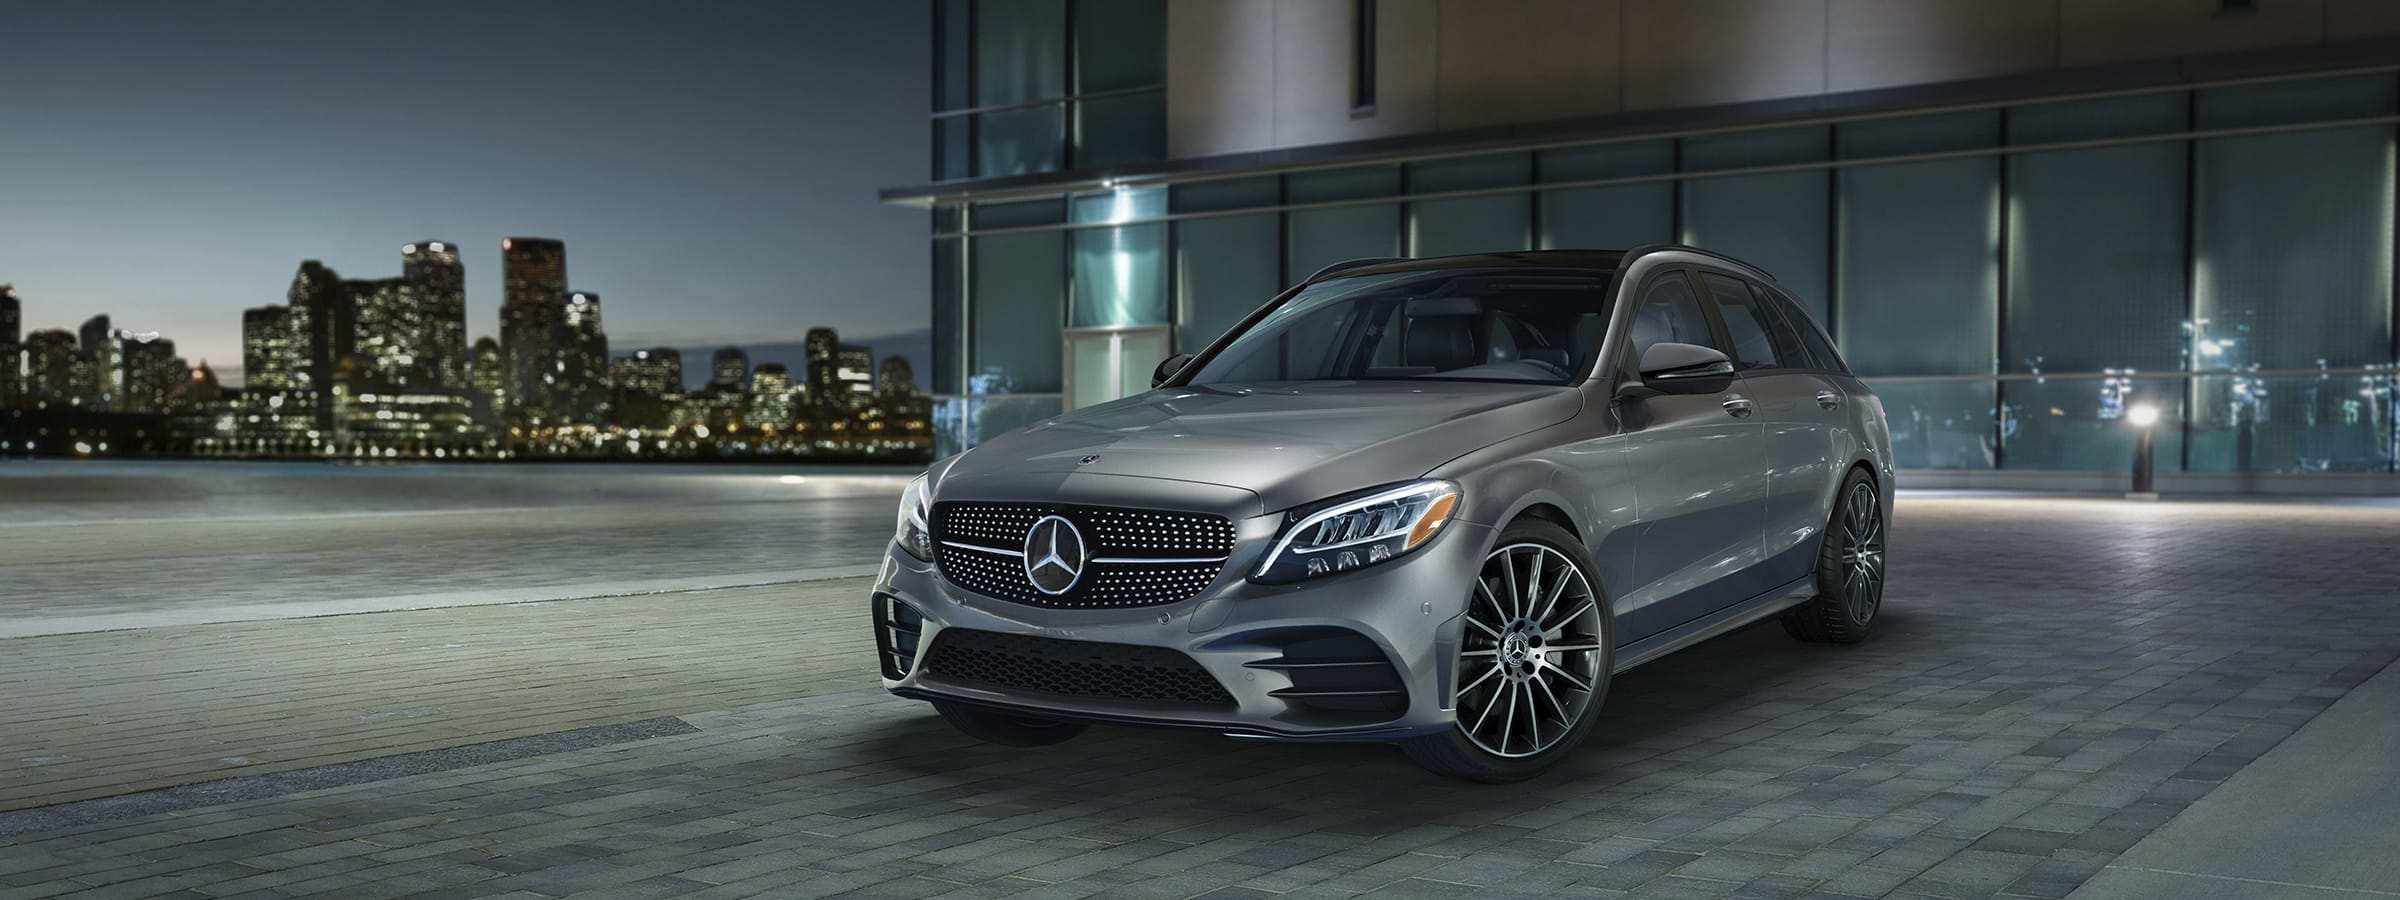 95 Great 2019 Mercedes Benz C Class Rumors with 2019 Mercedes Benz C Class